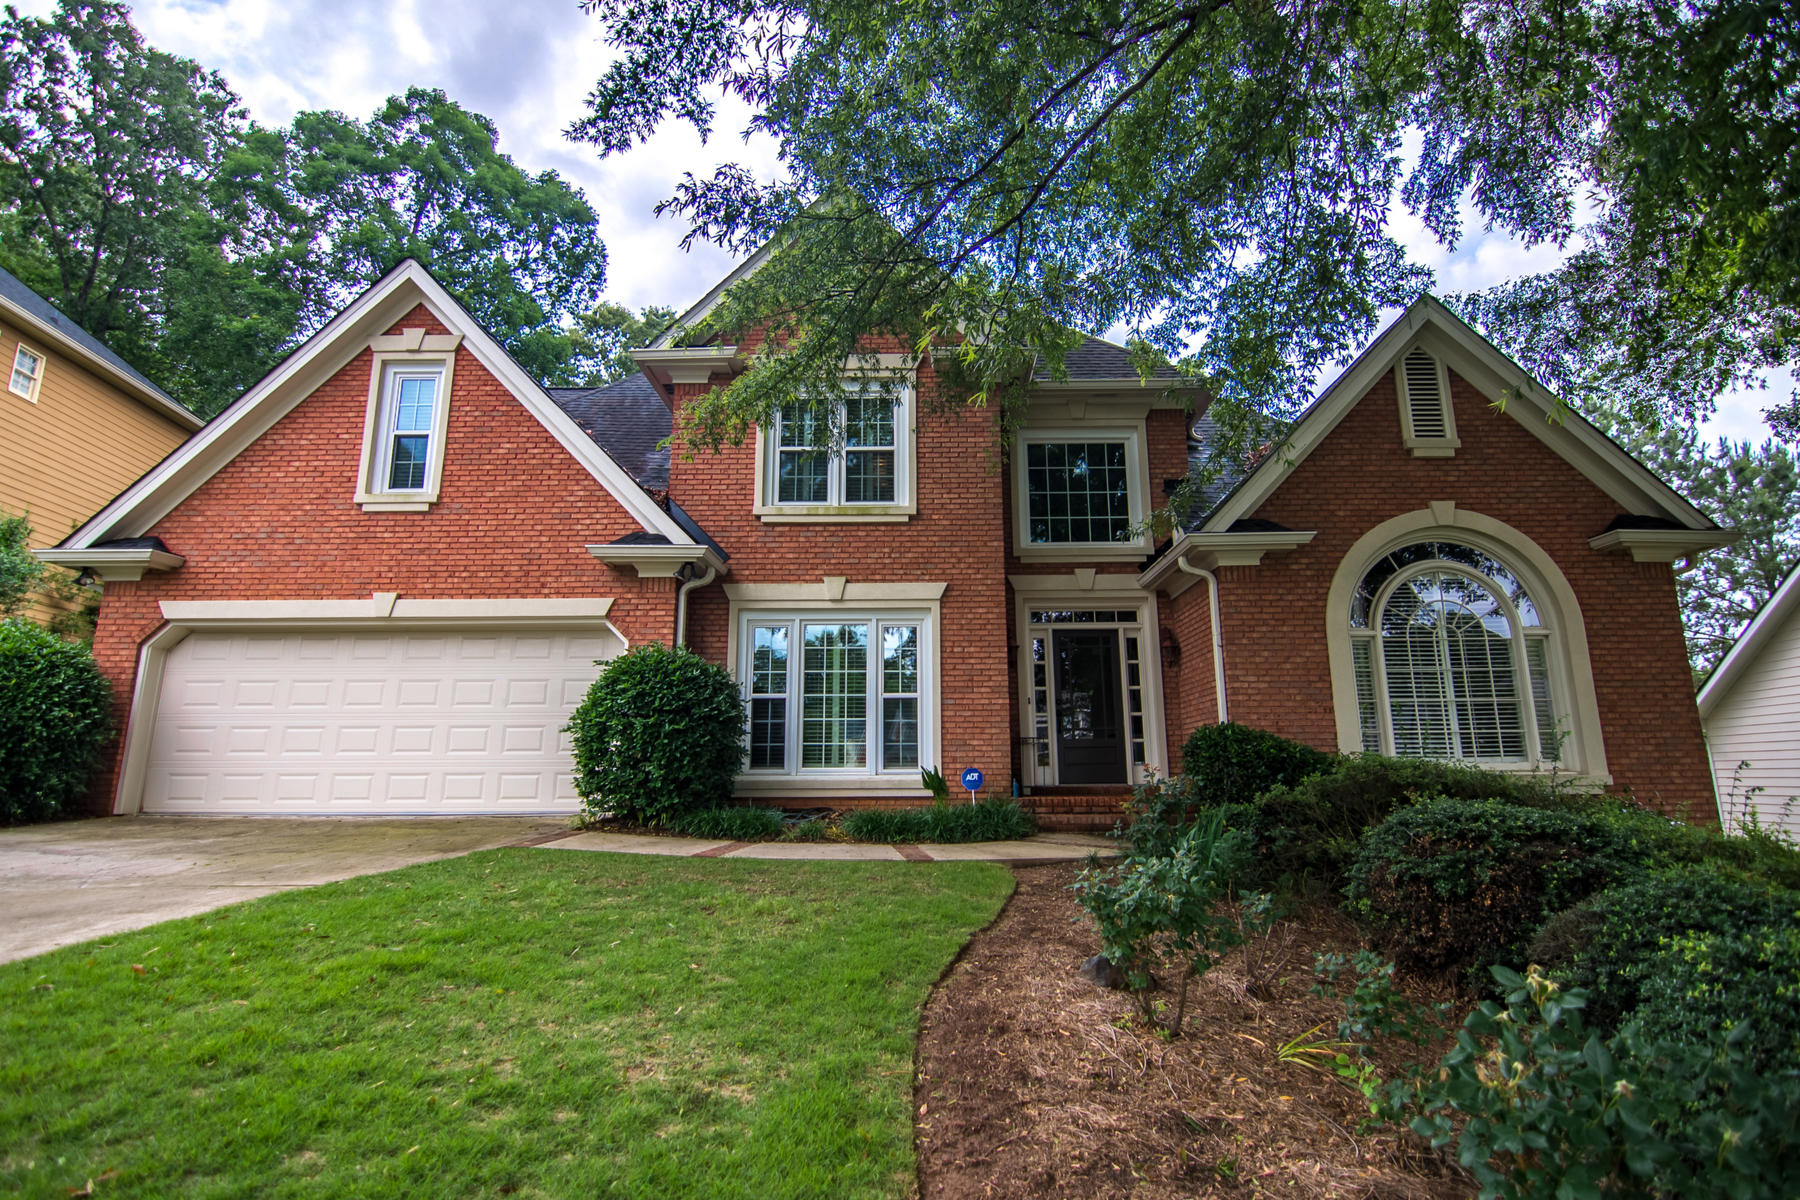 Single Family Home for Sale at Meticulously Maintained Traditional 7365 Brookstead Crossing Duluth, Georgia 30097 United States